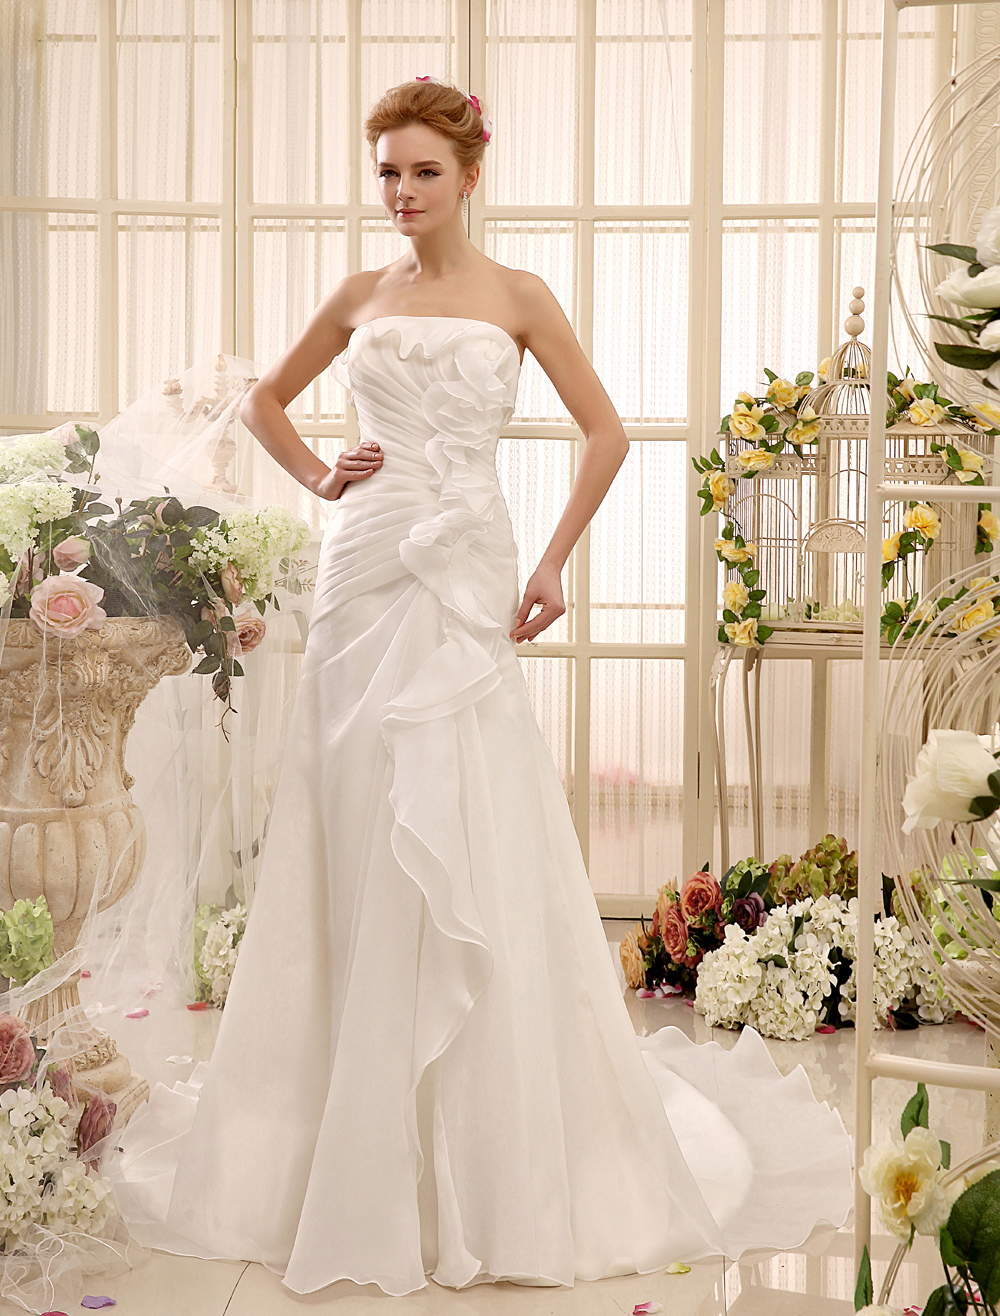 Ruched Chapel Train Ivory Brides Wedding Dress With Sheath Strapless Neck Milanoo